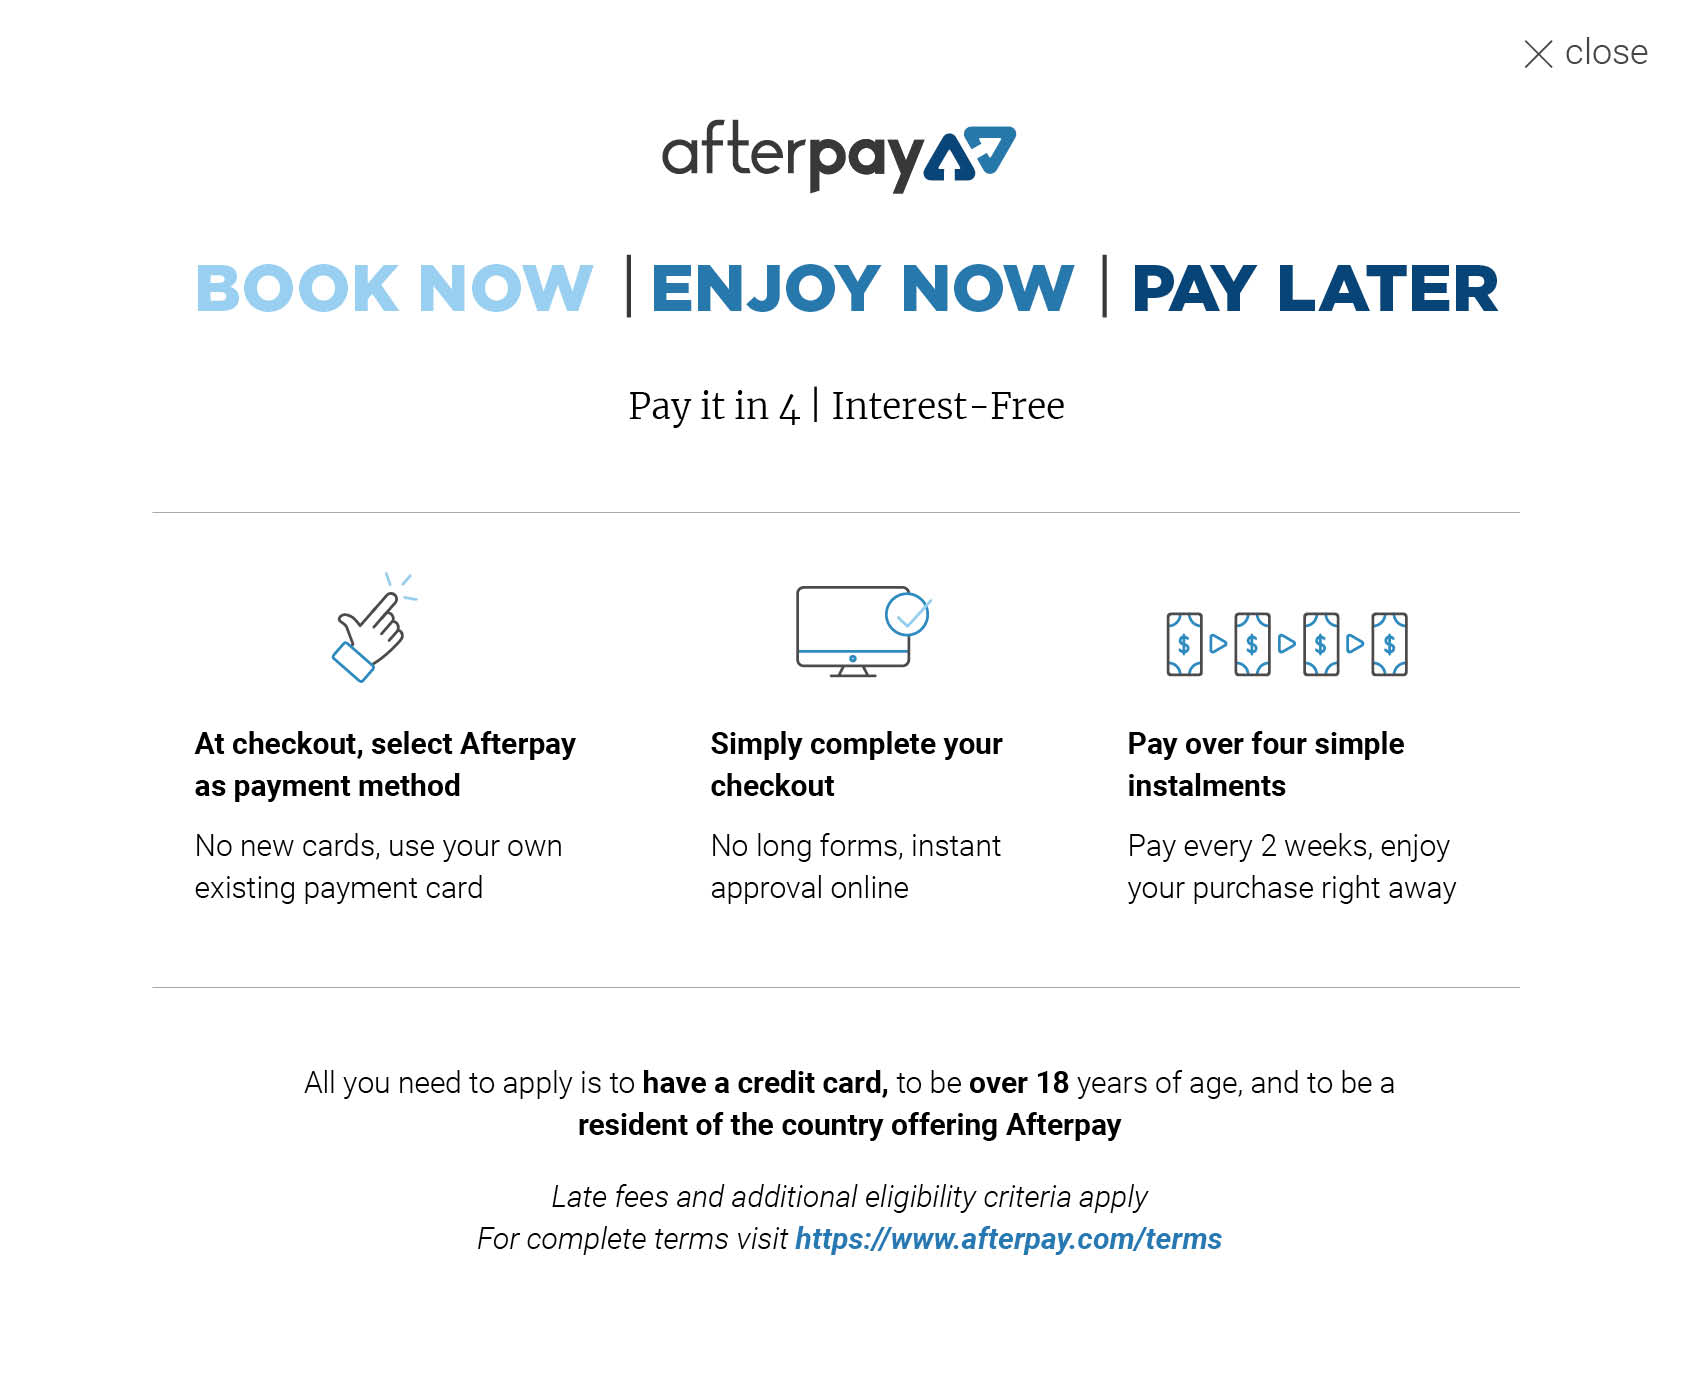 afterpay-lightbox-web-book-now.jpg